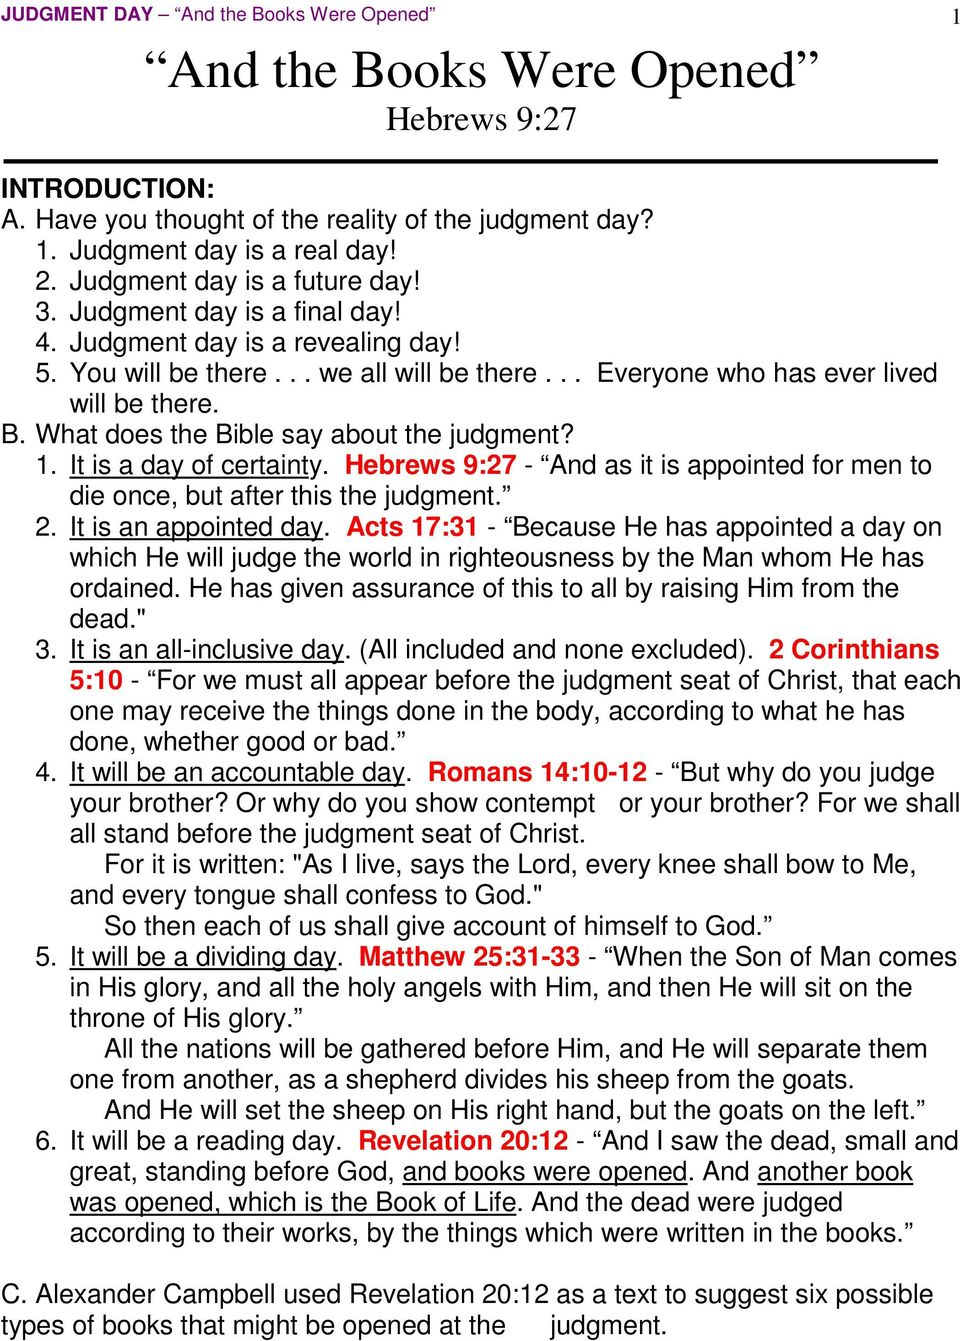 What does the Bible say about the judgment? 1. It is a day of certainty. Hebrews 9:27 - And as it is appointed for men to die once, but after this the judgment. 2. It is an appointed day.